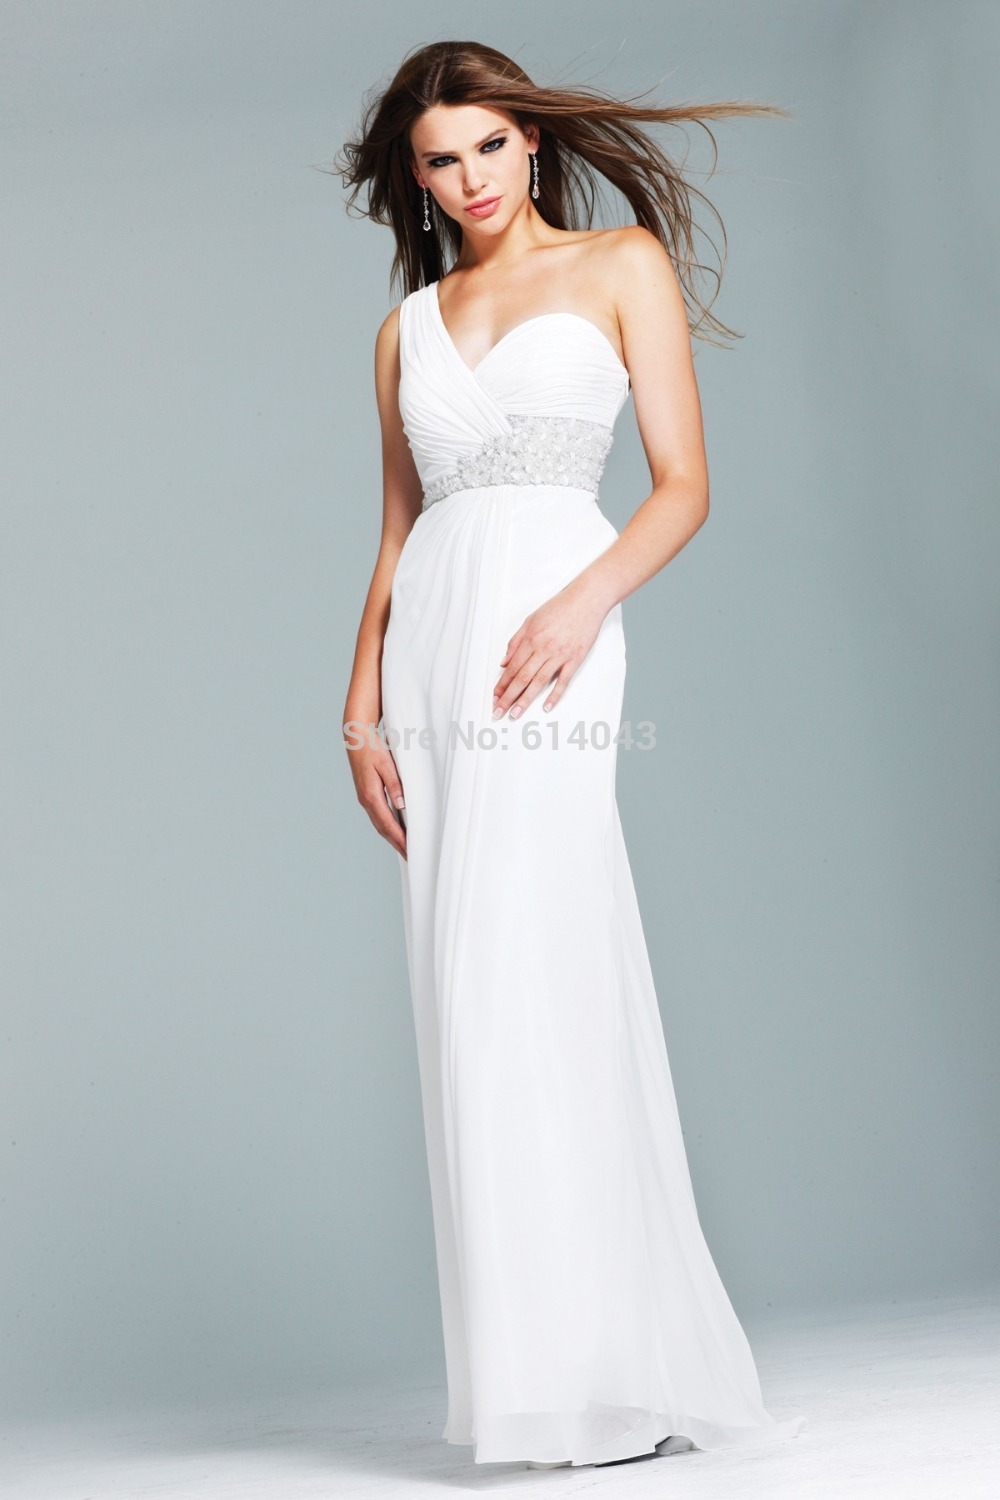 Attractive Genealogy Prom Dresses Image - All Wedding Dresses ...